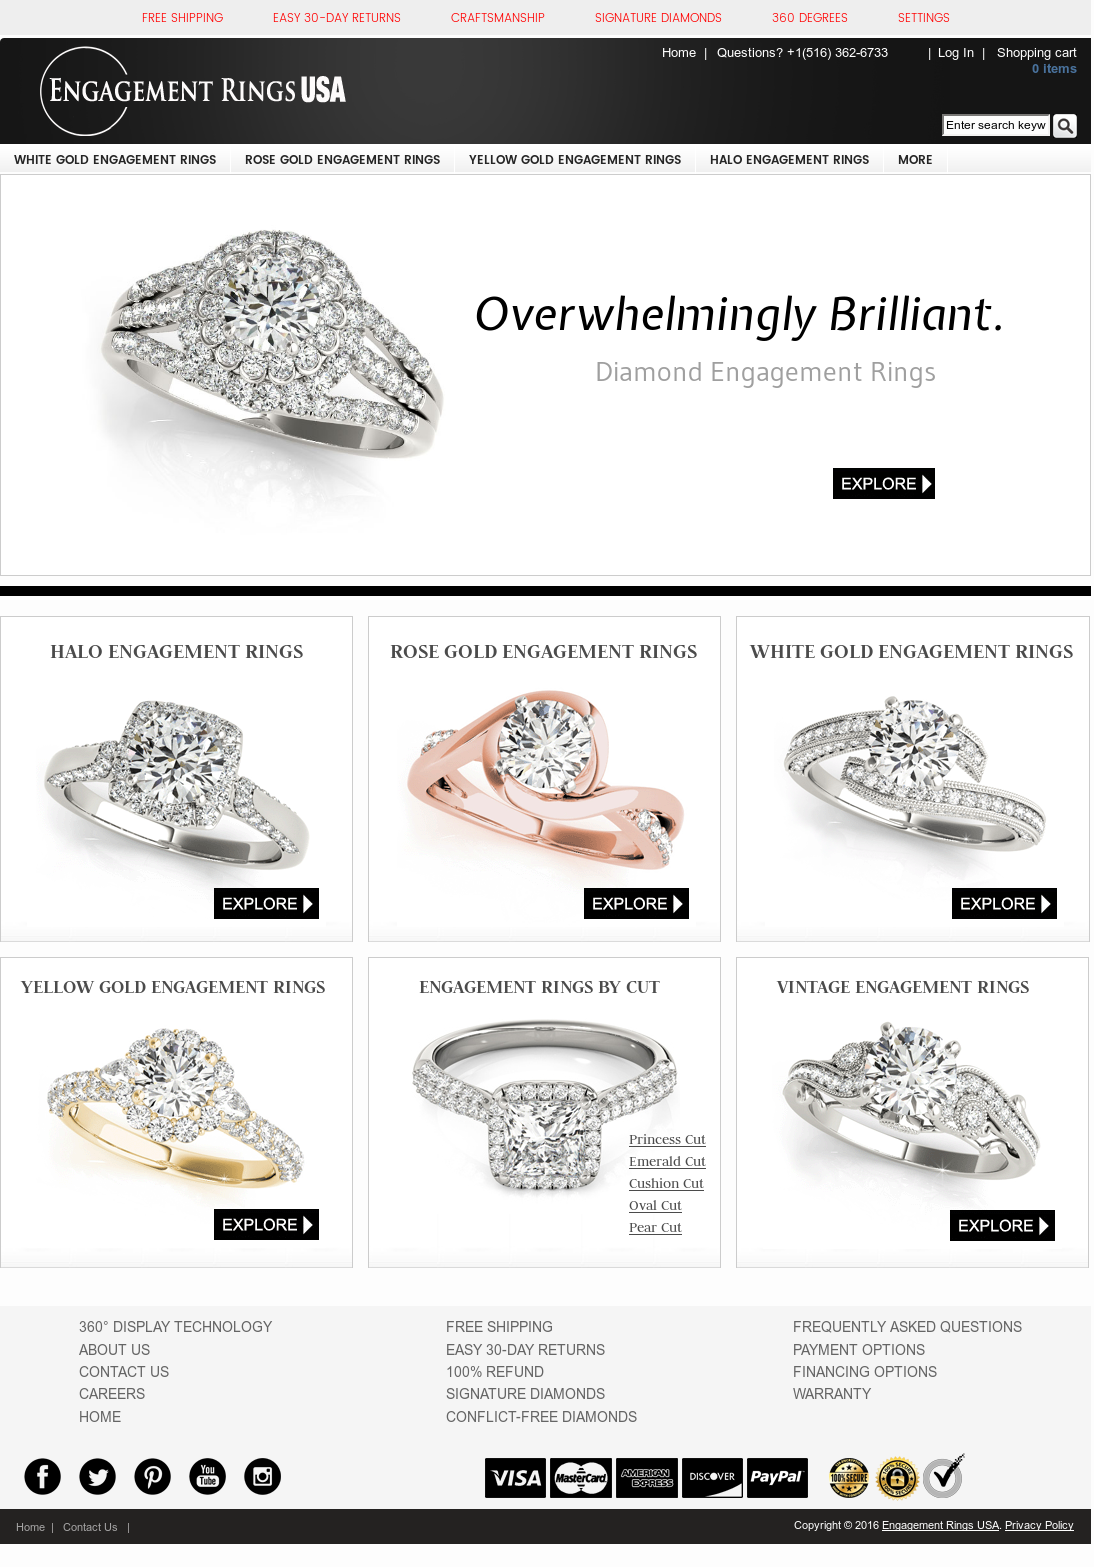 Engagement Rings Usa Competitors, Revenue and Employees